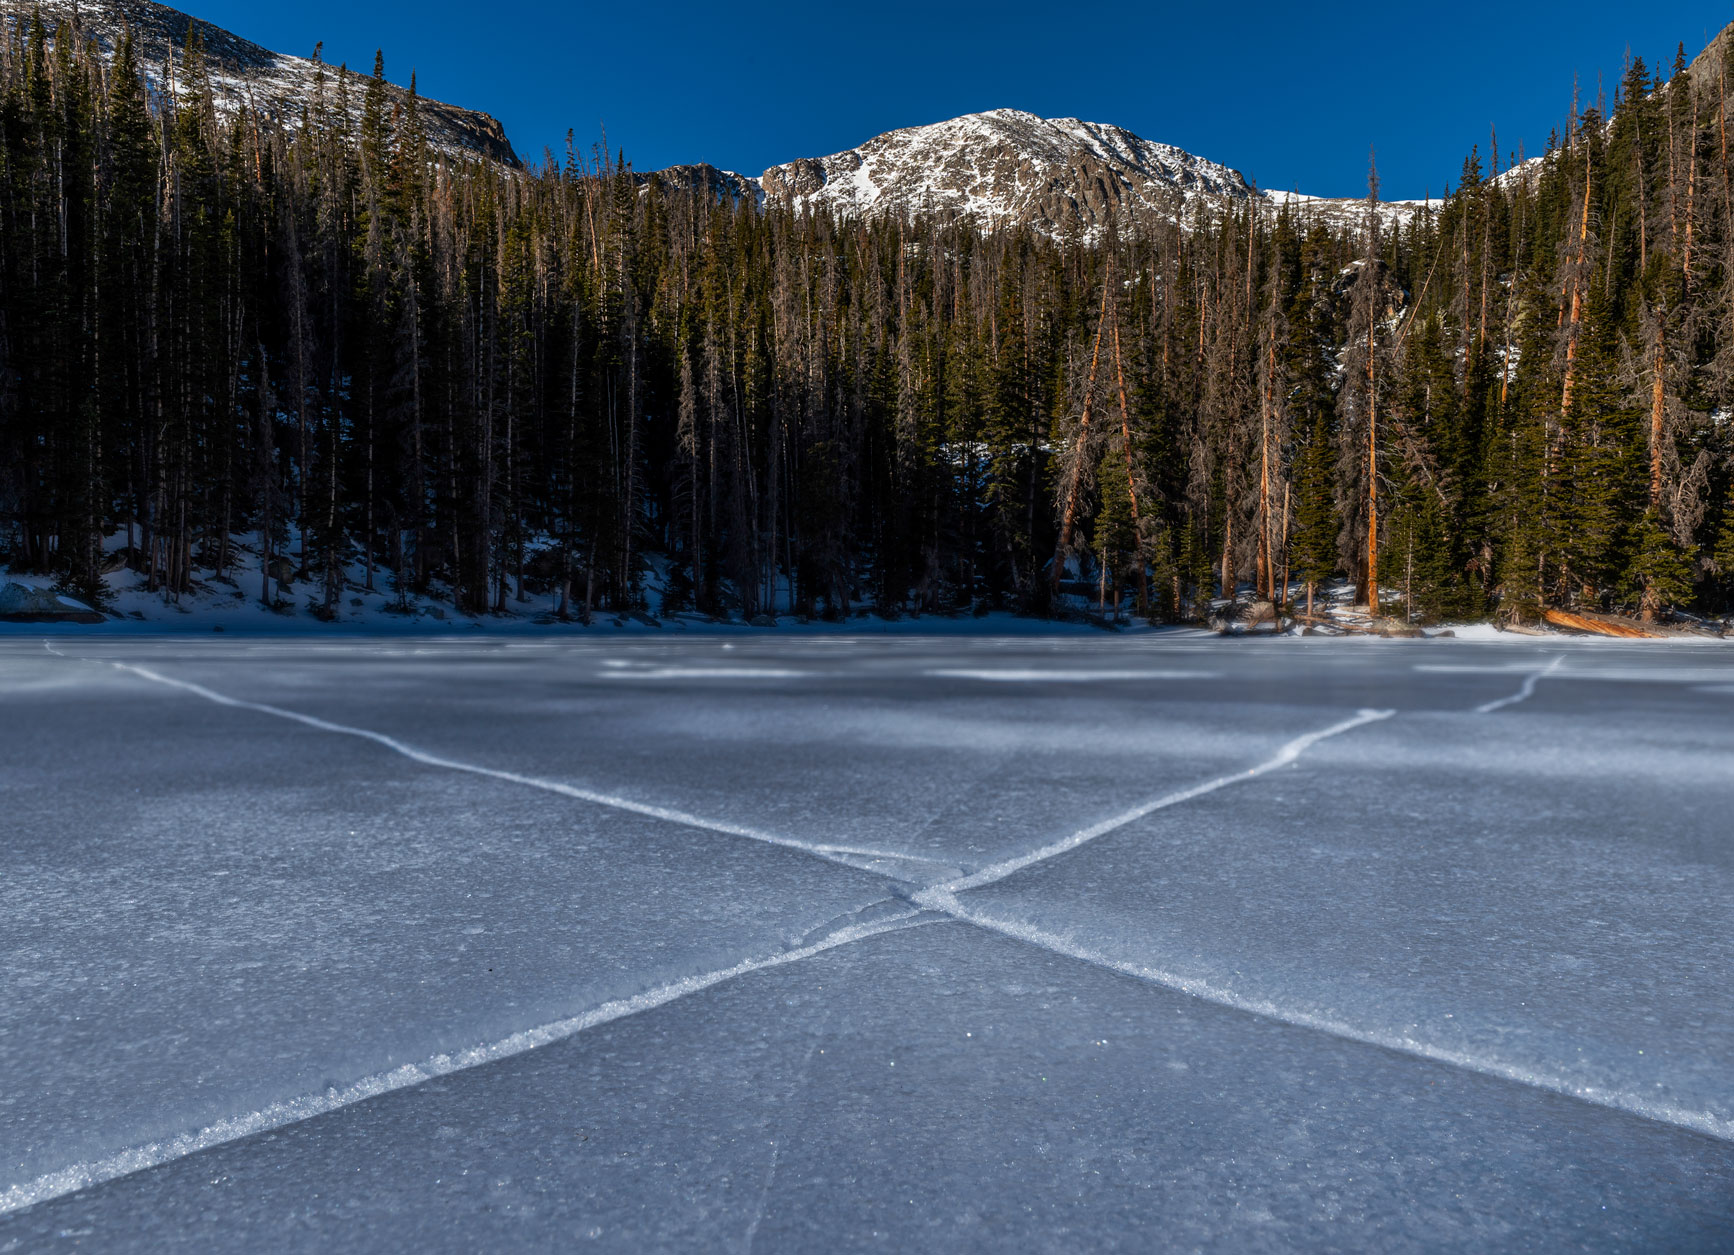 X marks the ice crack in the middle of Ypsilon Lake, looking at Ypsilon Mountain